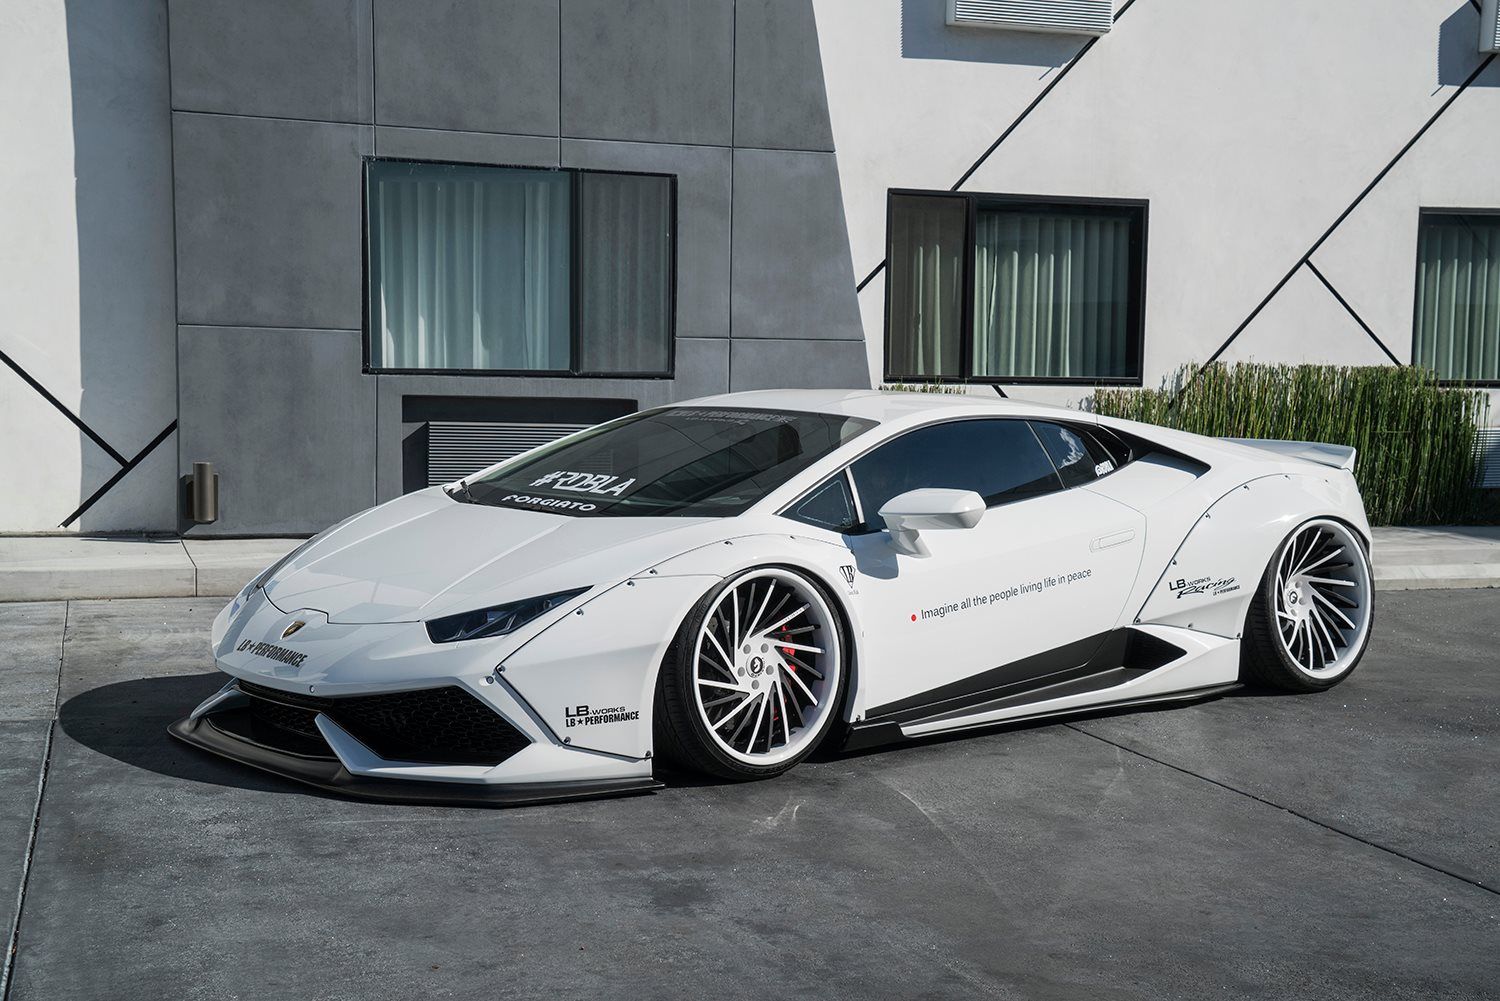 Lamborghini Aventador Spyder >> White Liberty Walk Lamborghini Huracan on Forgiato Wheels - GTspirit